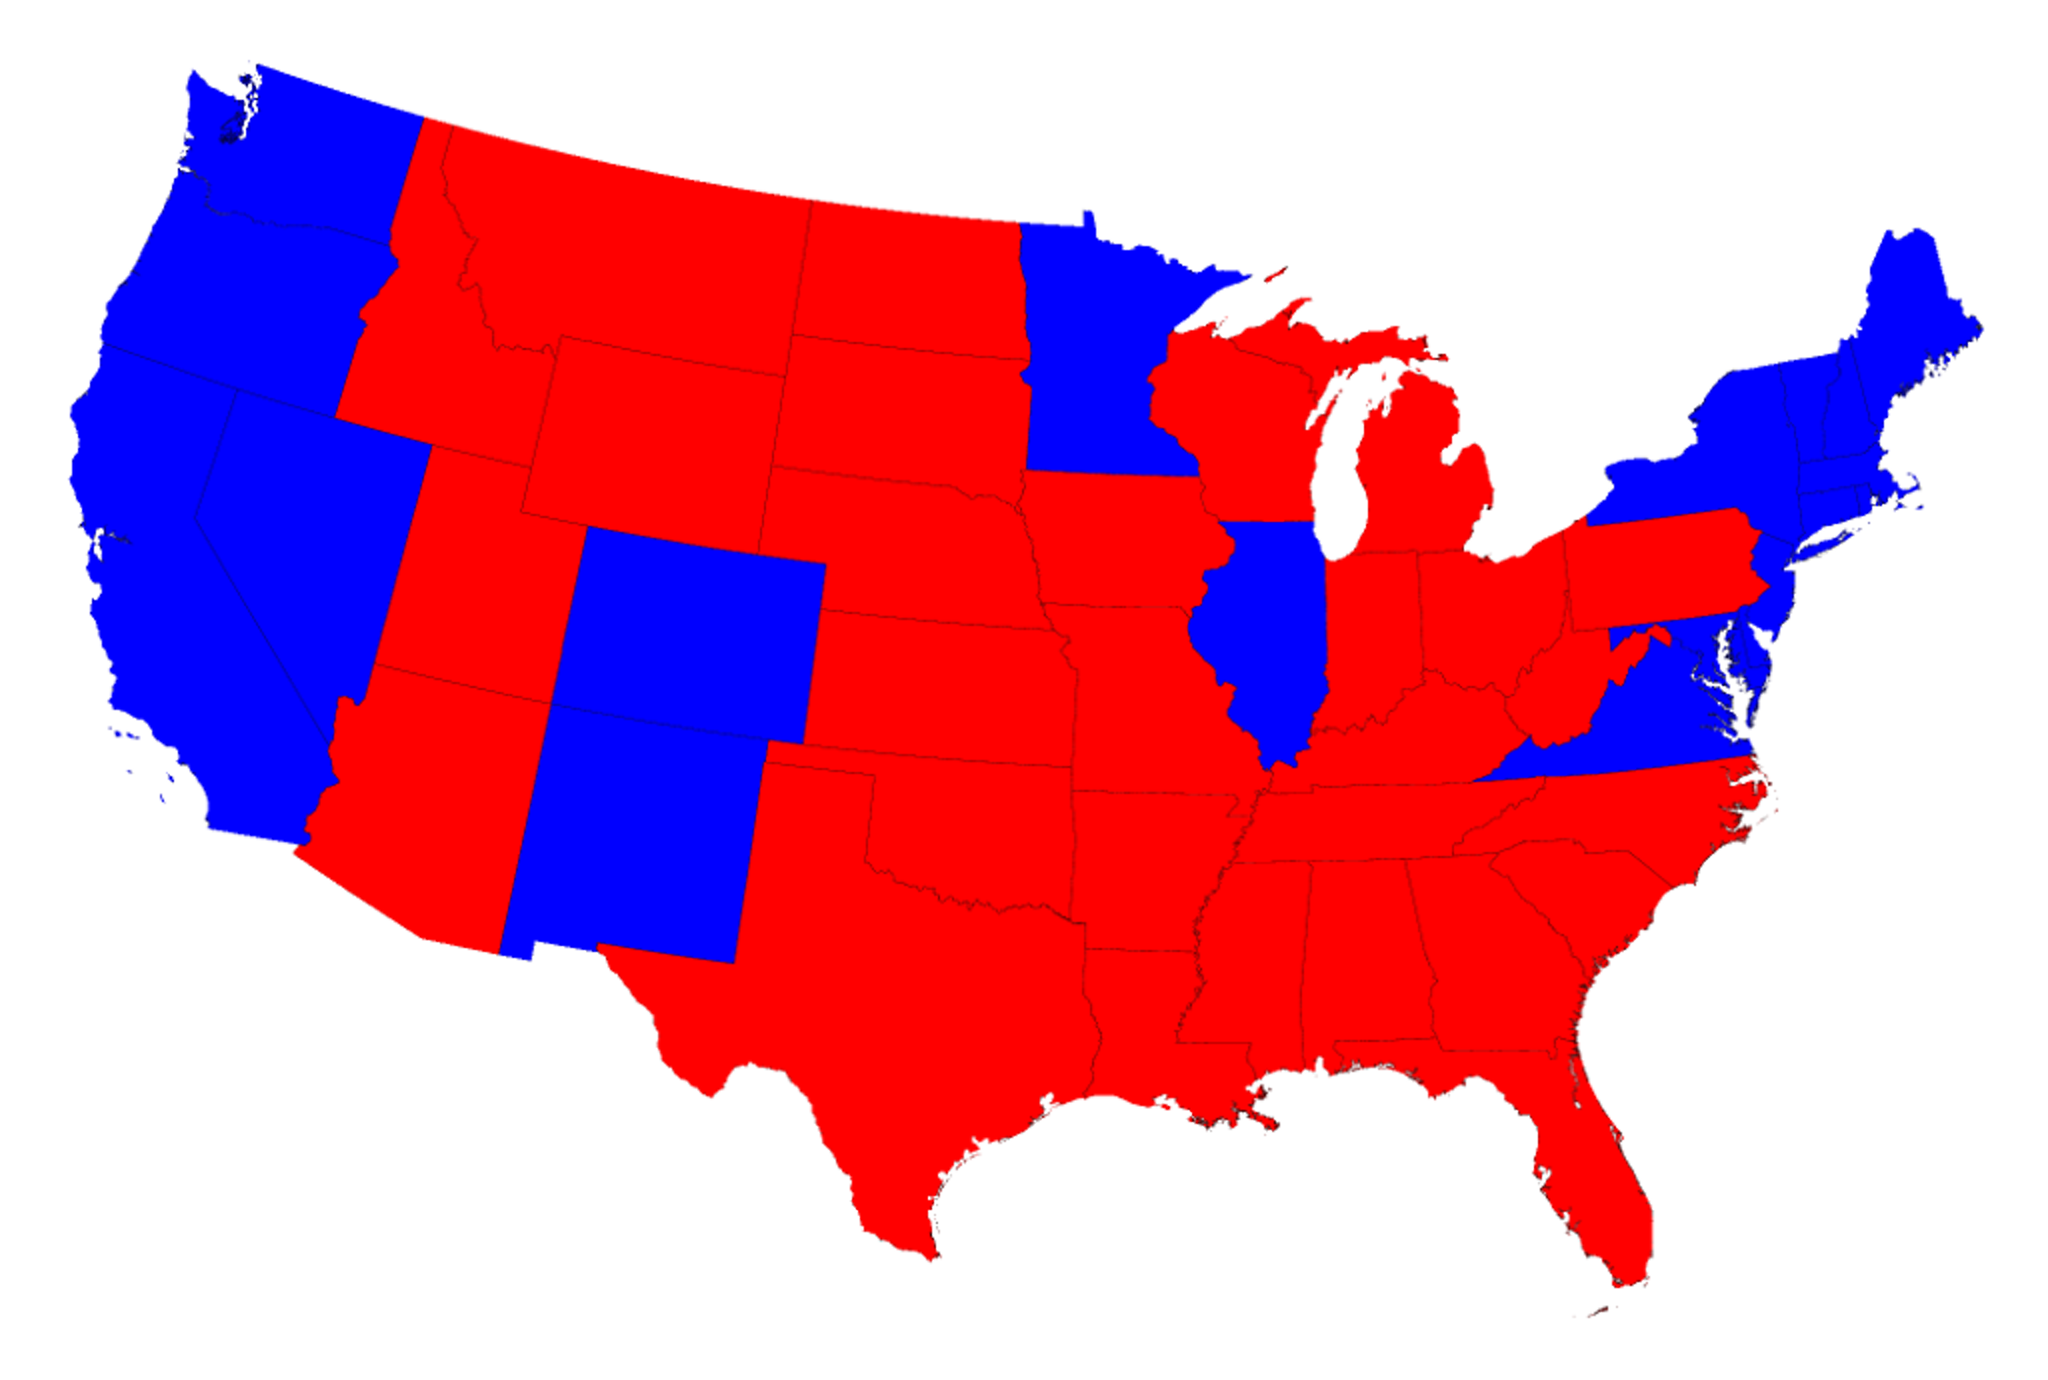 Red for Republican, blue for Democrat, of course.